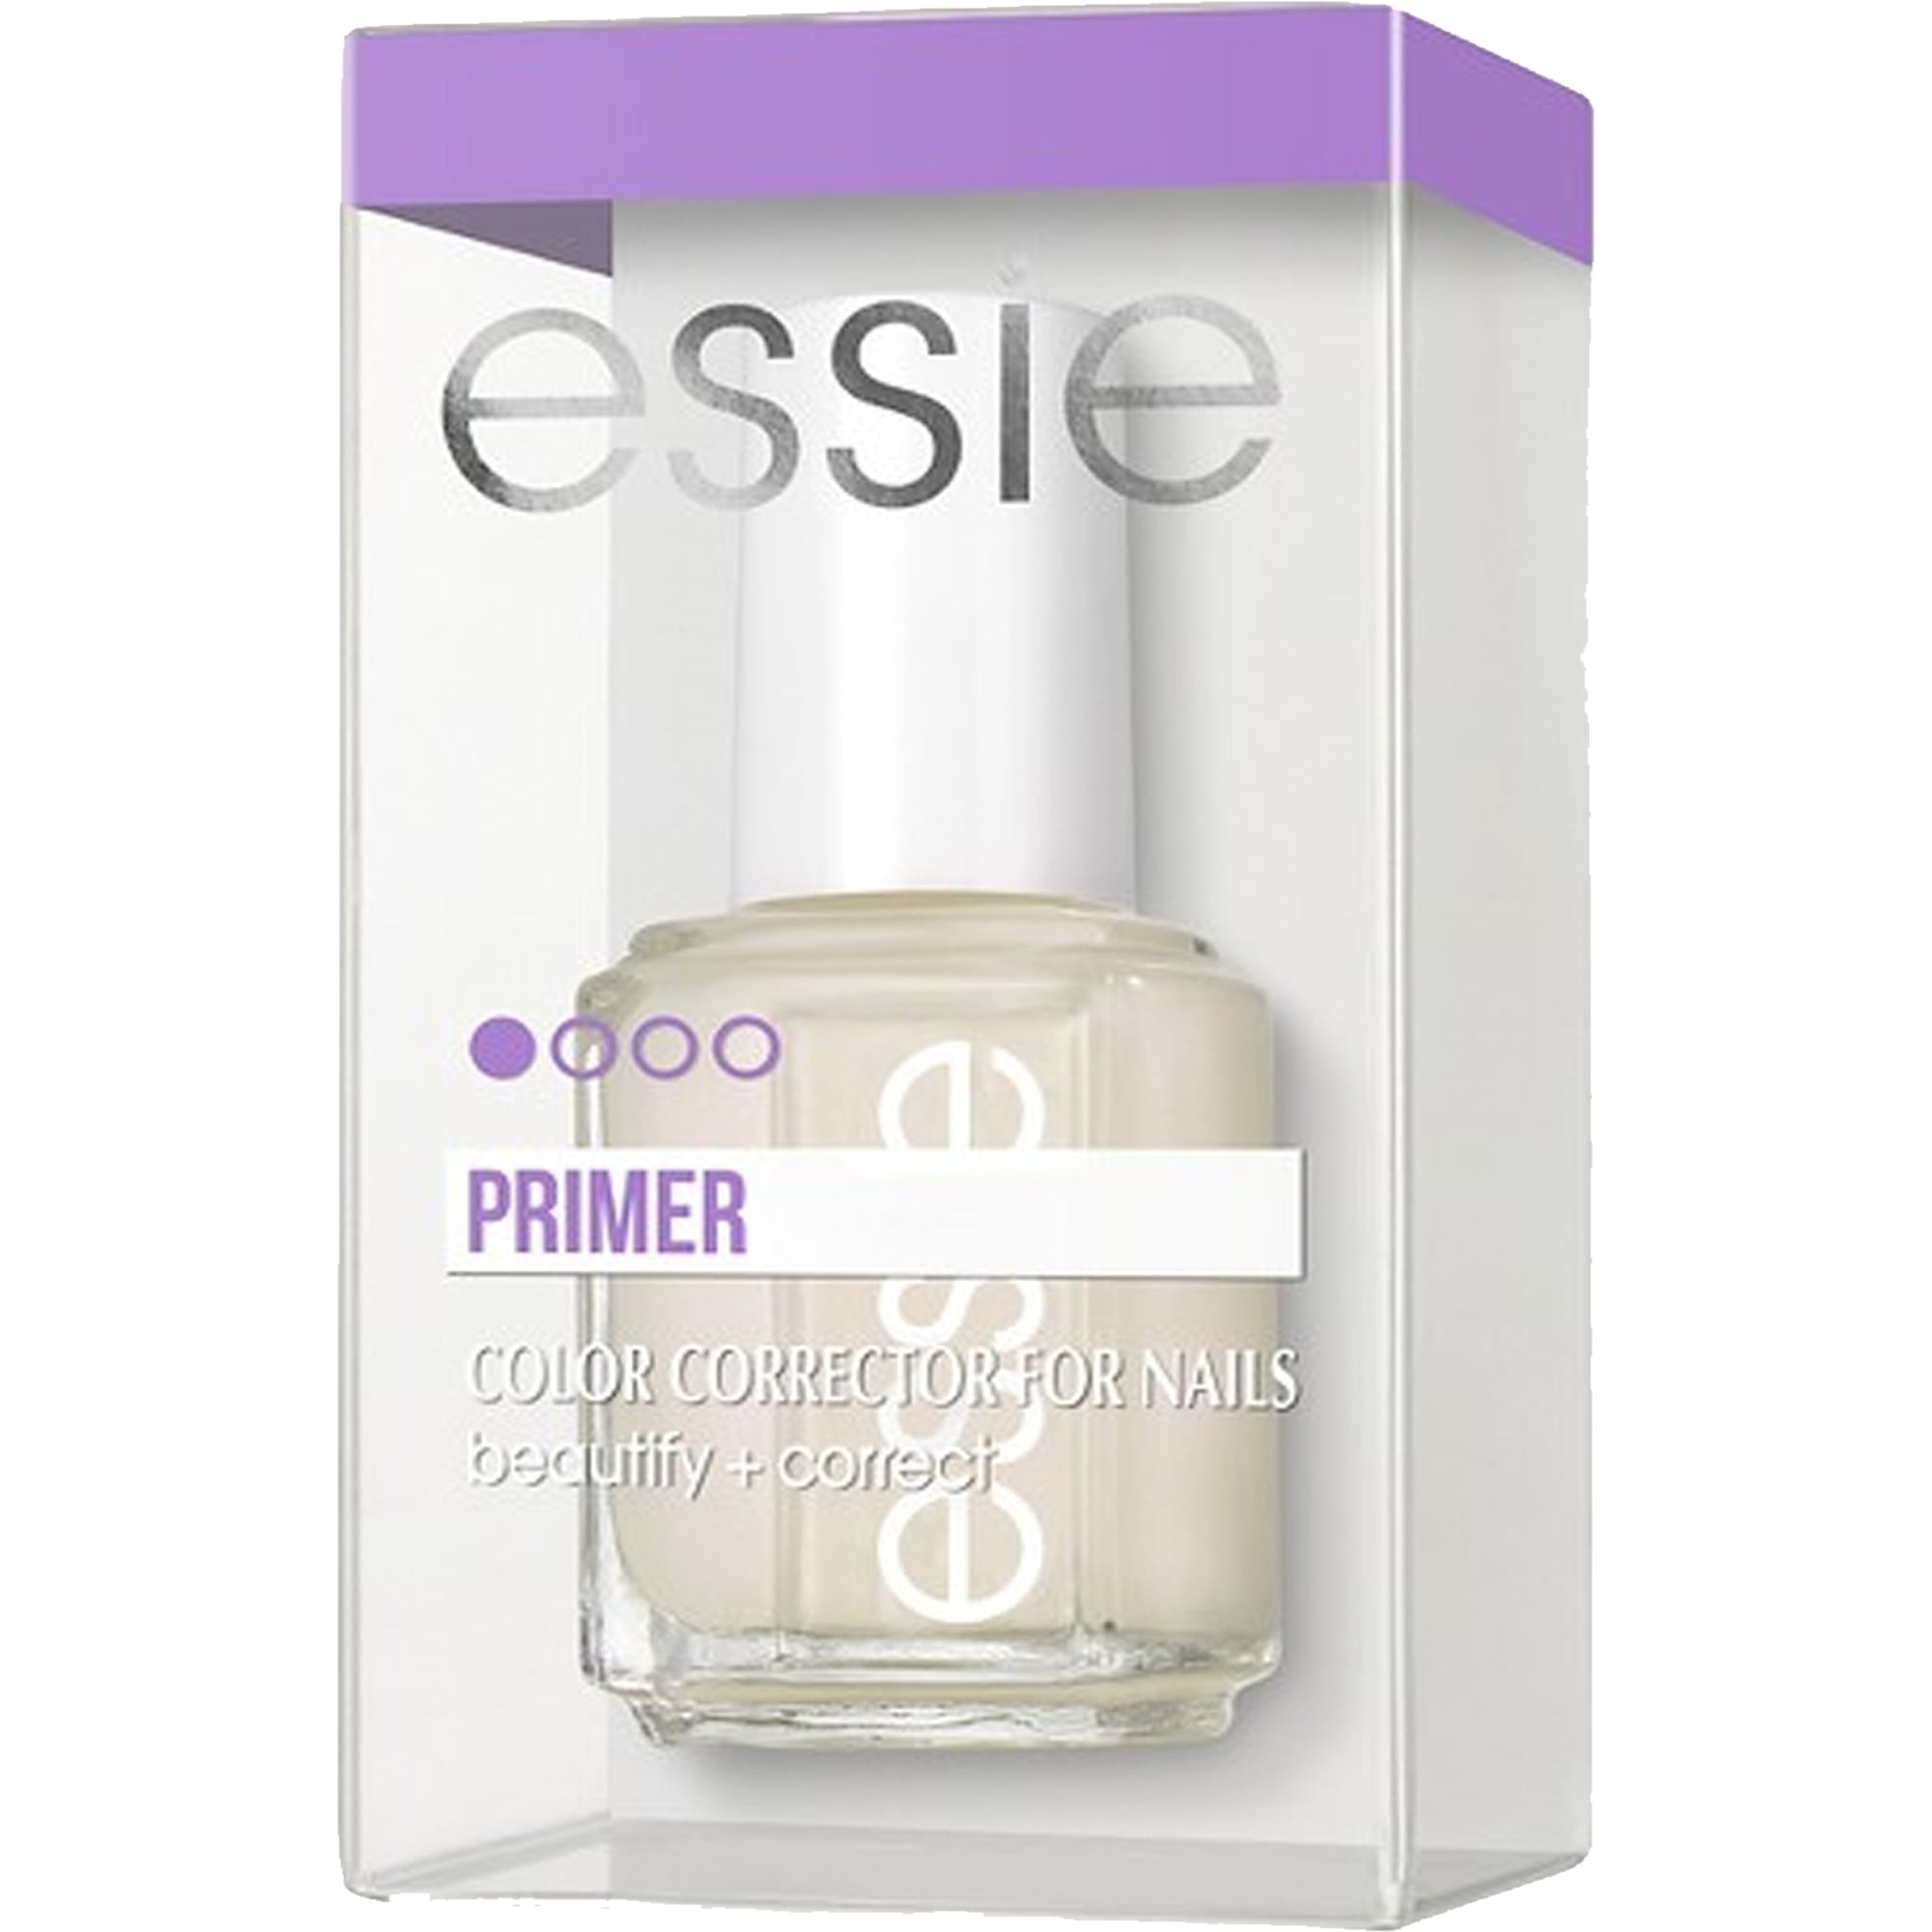 What is a primer for nails, and how to use it